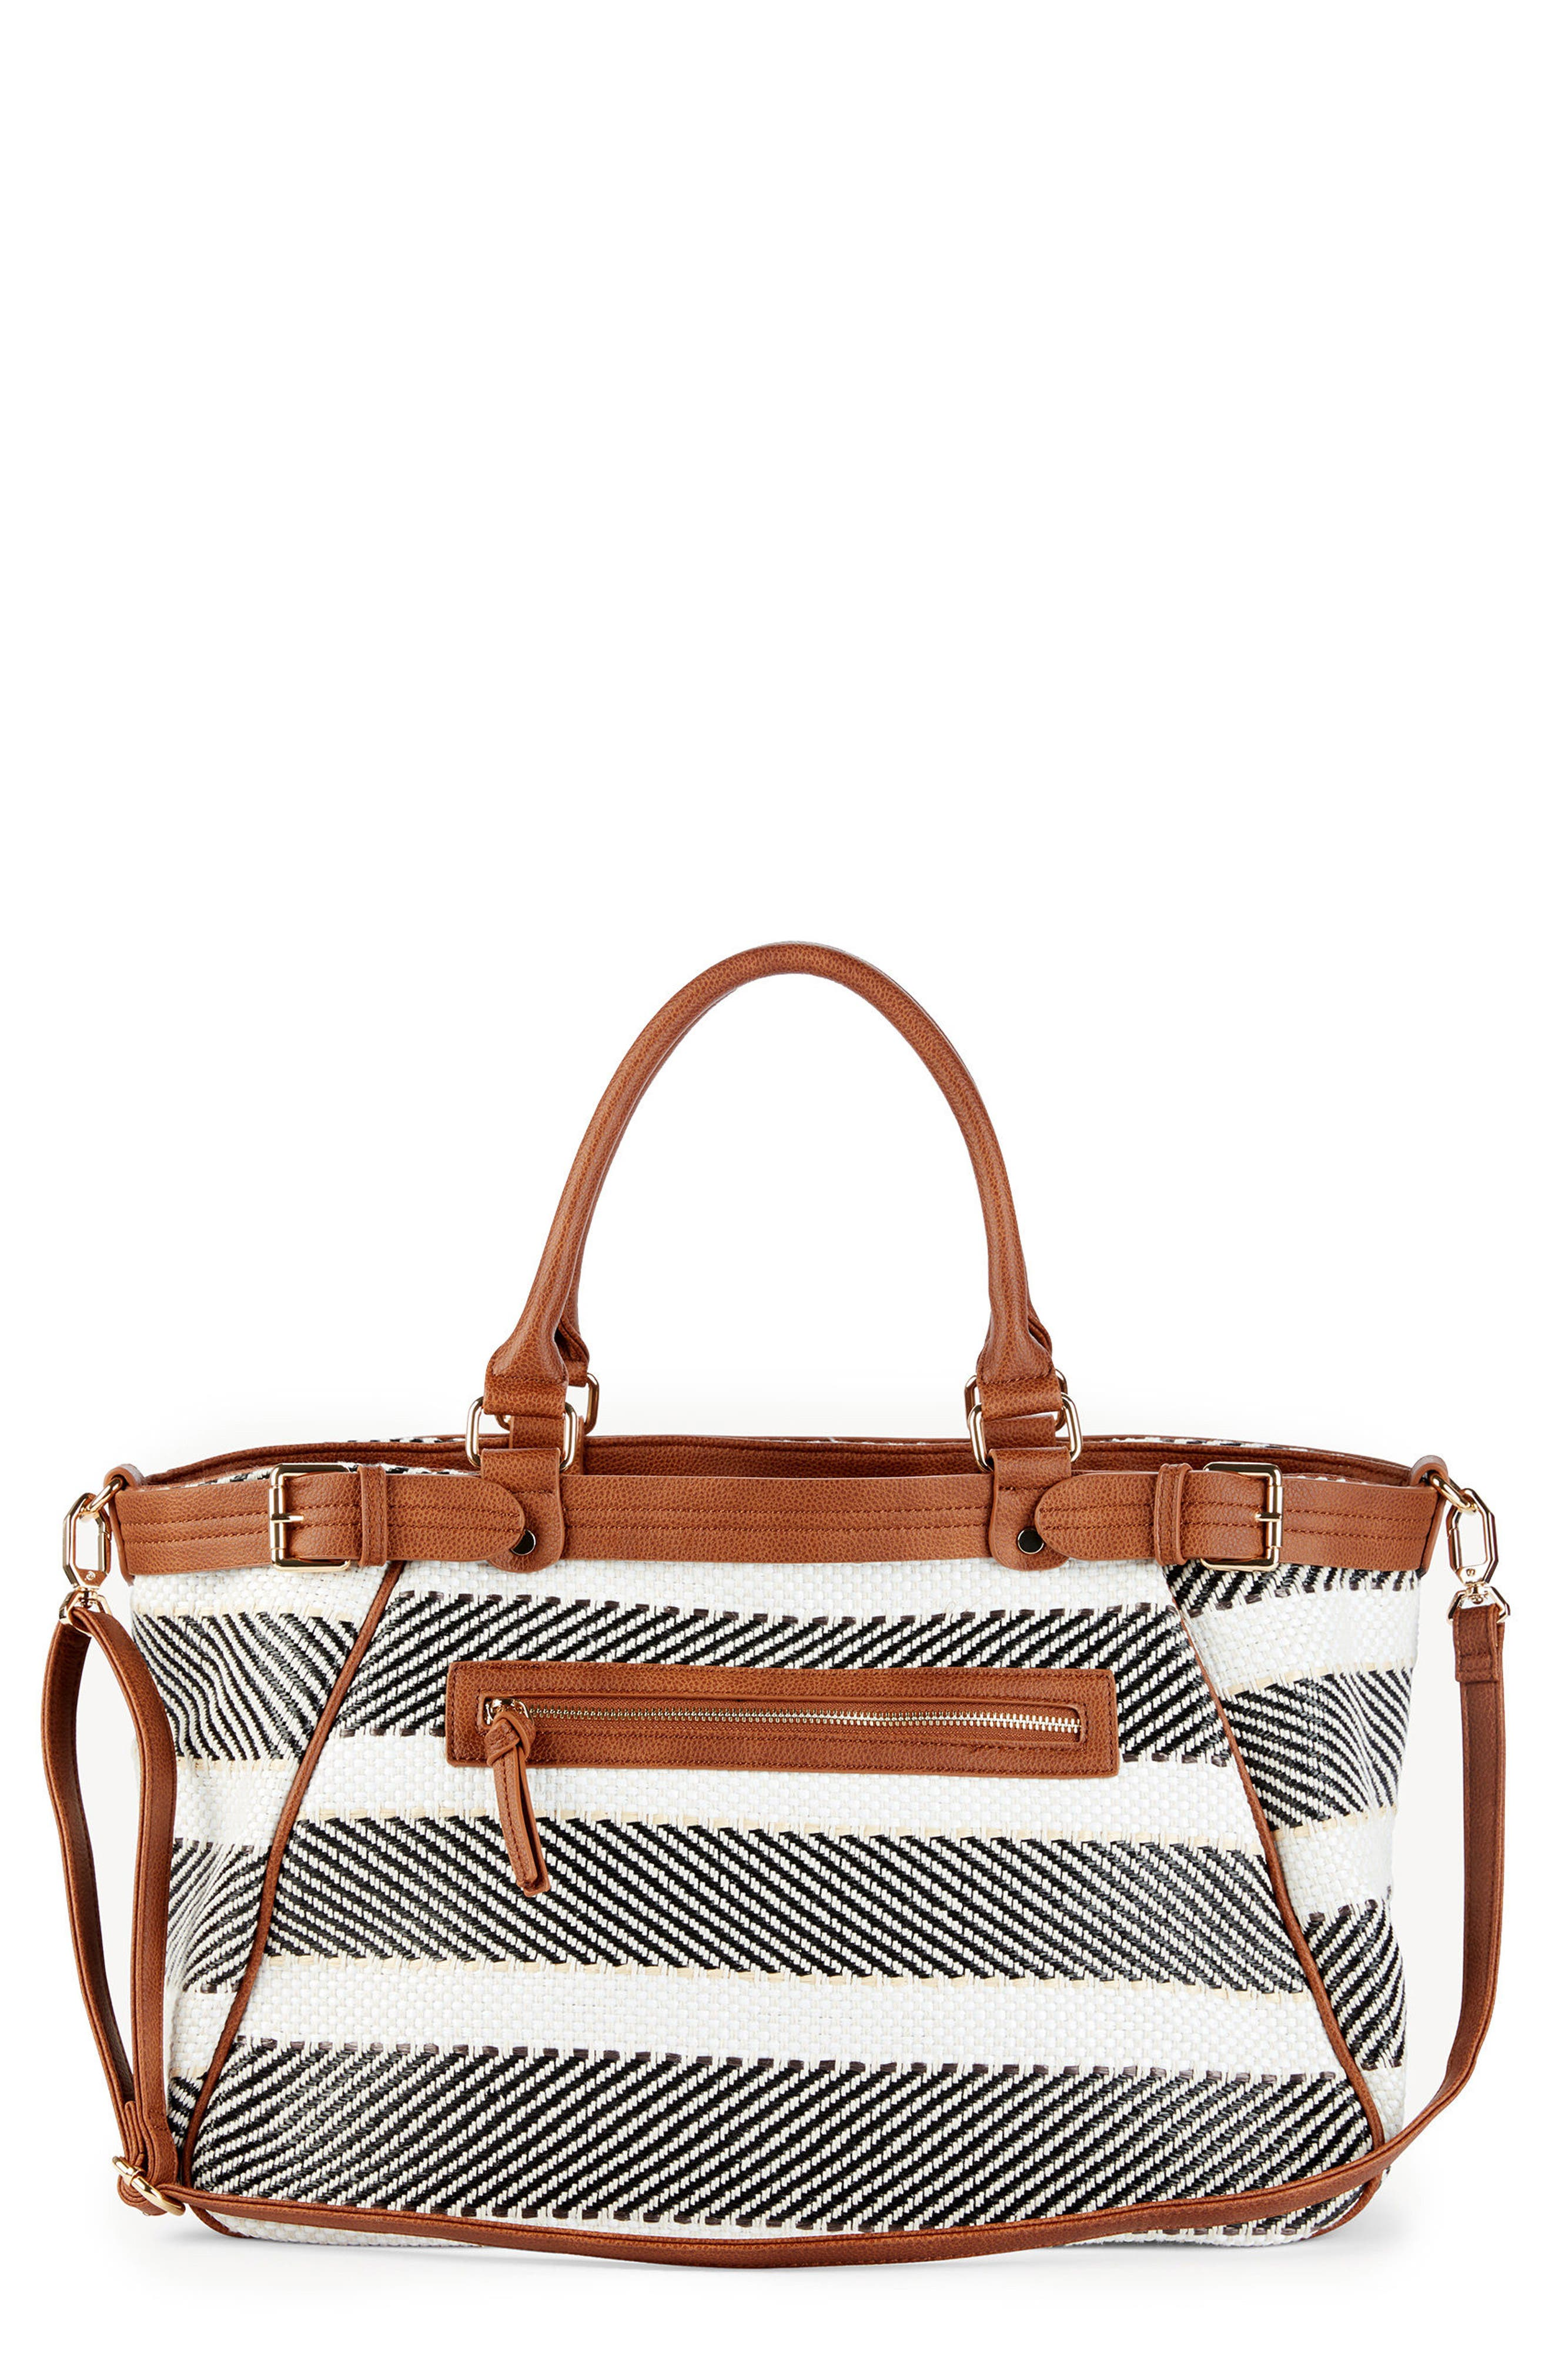 Stripe Woven Weekend Bag,                             Main thumbnail 1, color,                             001